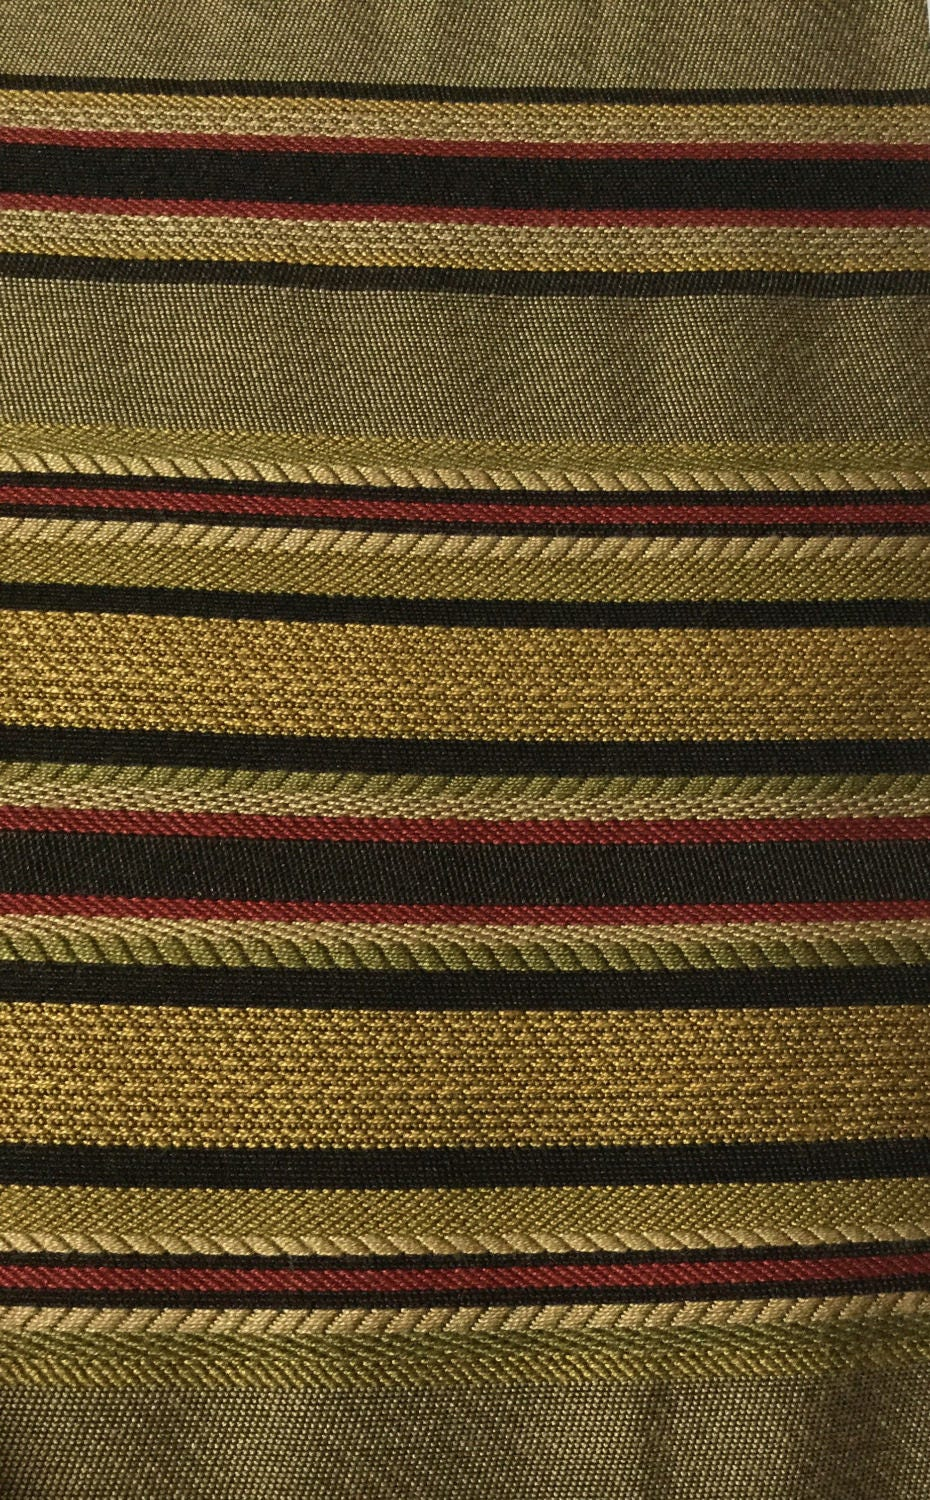 Red Gold Black Green Stripe Upholstery Fabric By The Yard Etsy